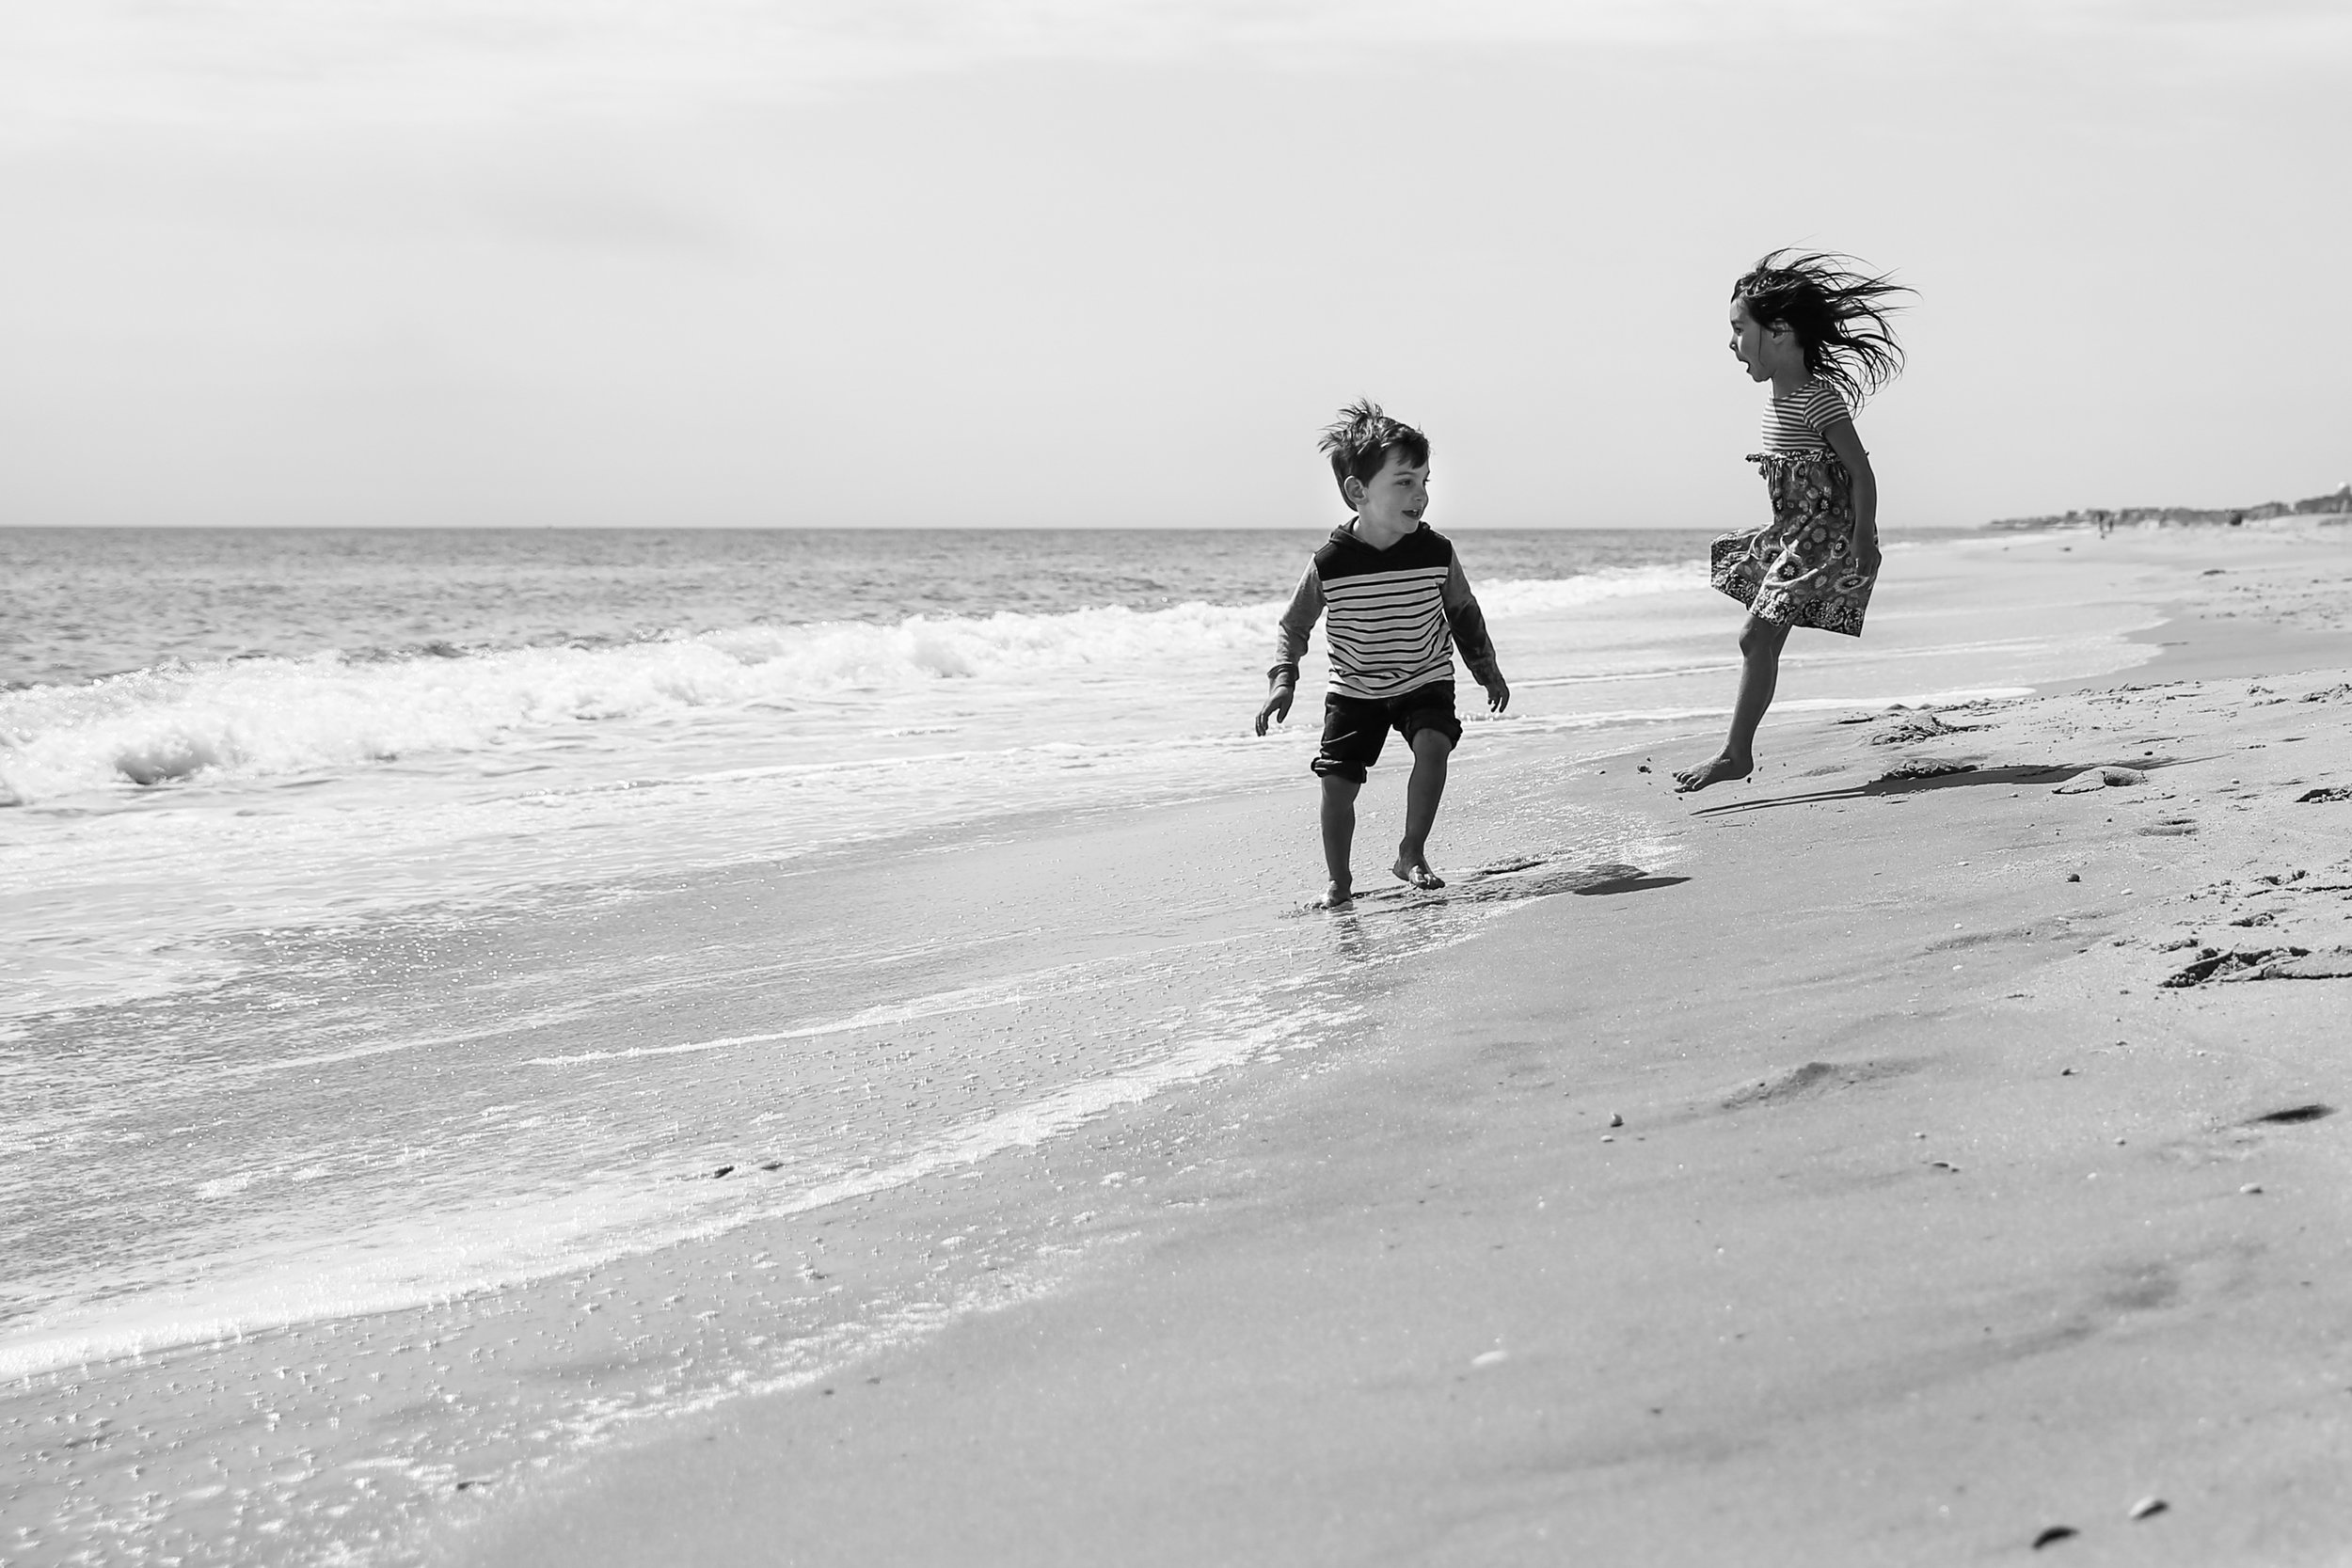 Boy and girl play and jump on the beach as ocean waves roll in